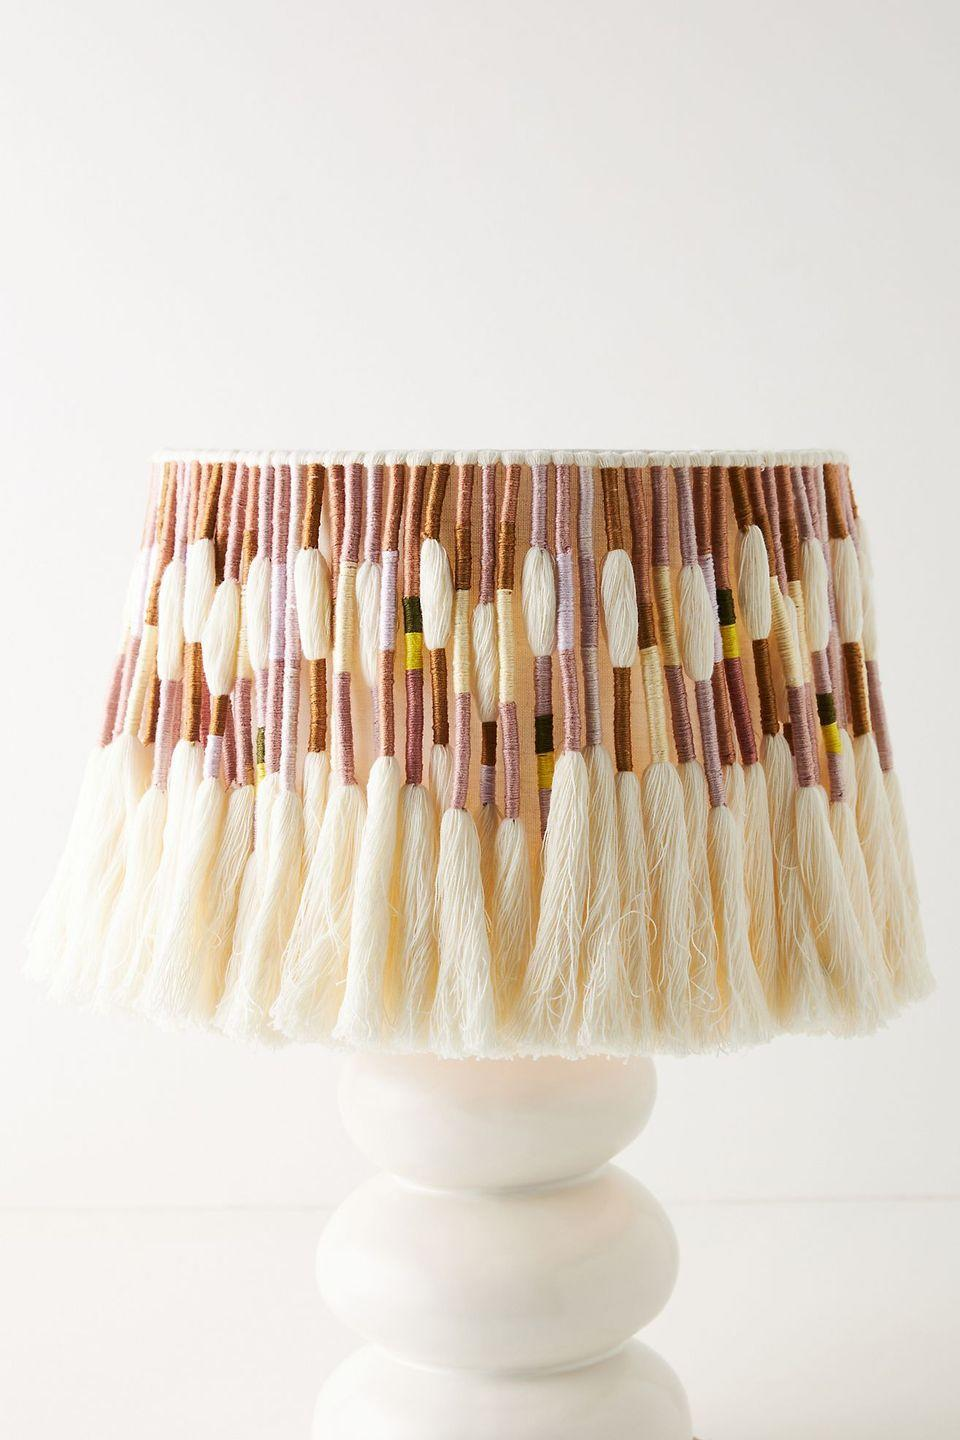 """<p>Here's another lampshade that celebrates the unique inconsistencies of handcrafted objects. This tasselled shade has an irresistible texture, mixing creamy and coloured cotton threads. A piece for both modern and vintage design schemes, it's an eye-catching accent wherever you put it.<br></p><p><strong>Shop now: <a href=""""https://www.anthropologie.com/en-gb/shop/corrine-tasseled-lamp-shade?category=home-lighting&color=066&type=REGULAR&quantity=1"""" rel=""""nofollow noopener"""" target=""""_blank"""" data-ylk=""""slk:Corrine Tasseled Lamp Shade ay Anthropologie"""" class=""""link rapid-noclick-resp"""">Corrine Tasseled Lamp Shade ay Anthropologie</a></strong></p>"""